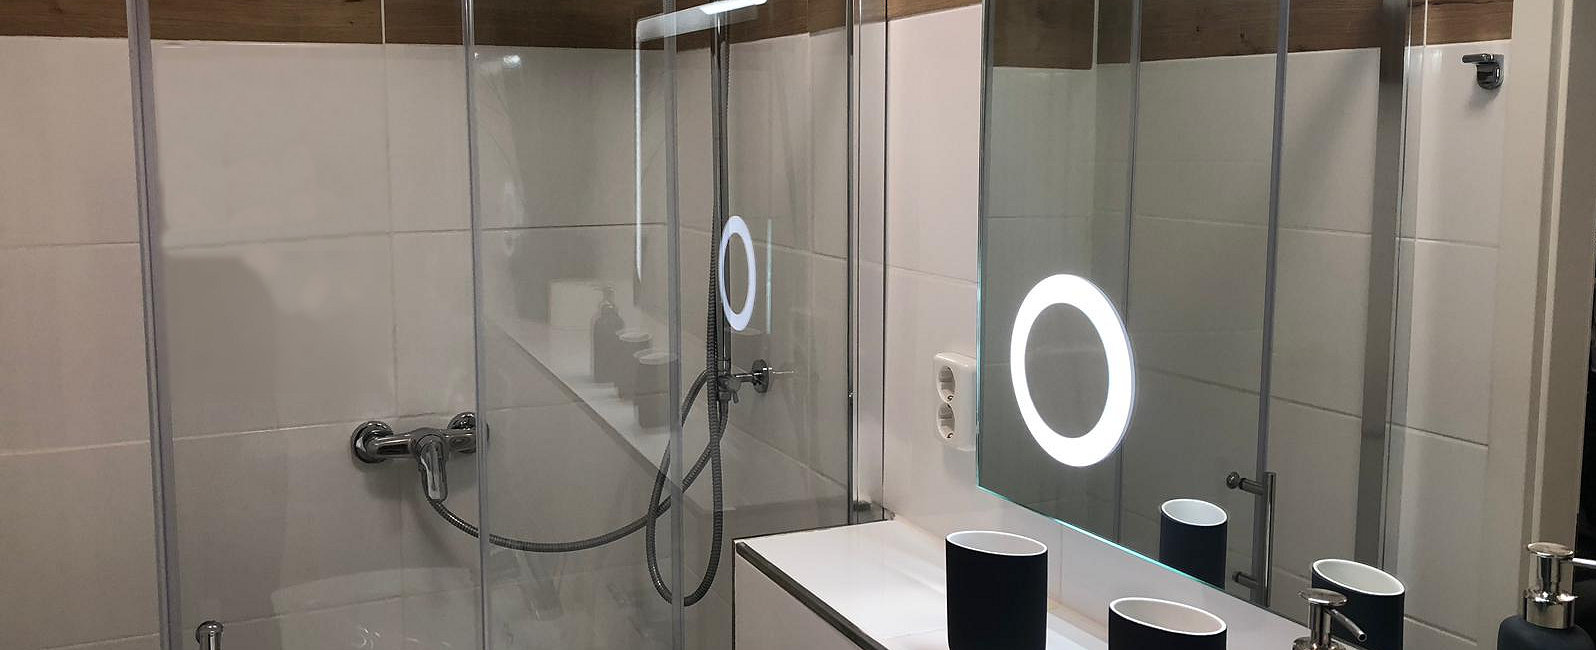 Bath with Toilet/Shower